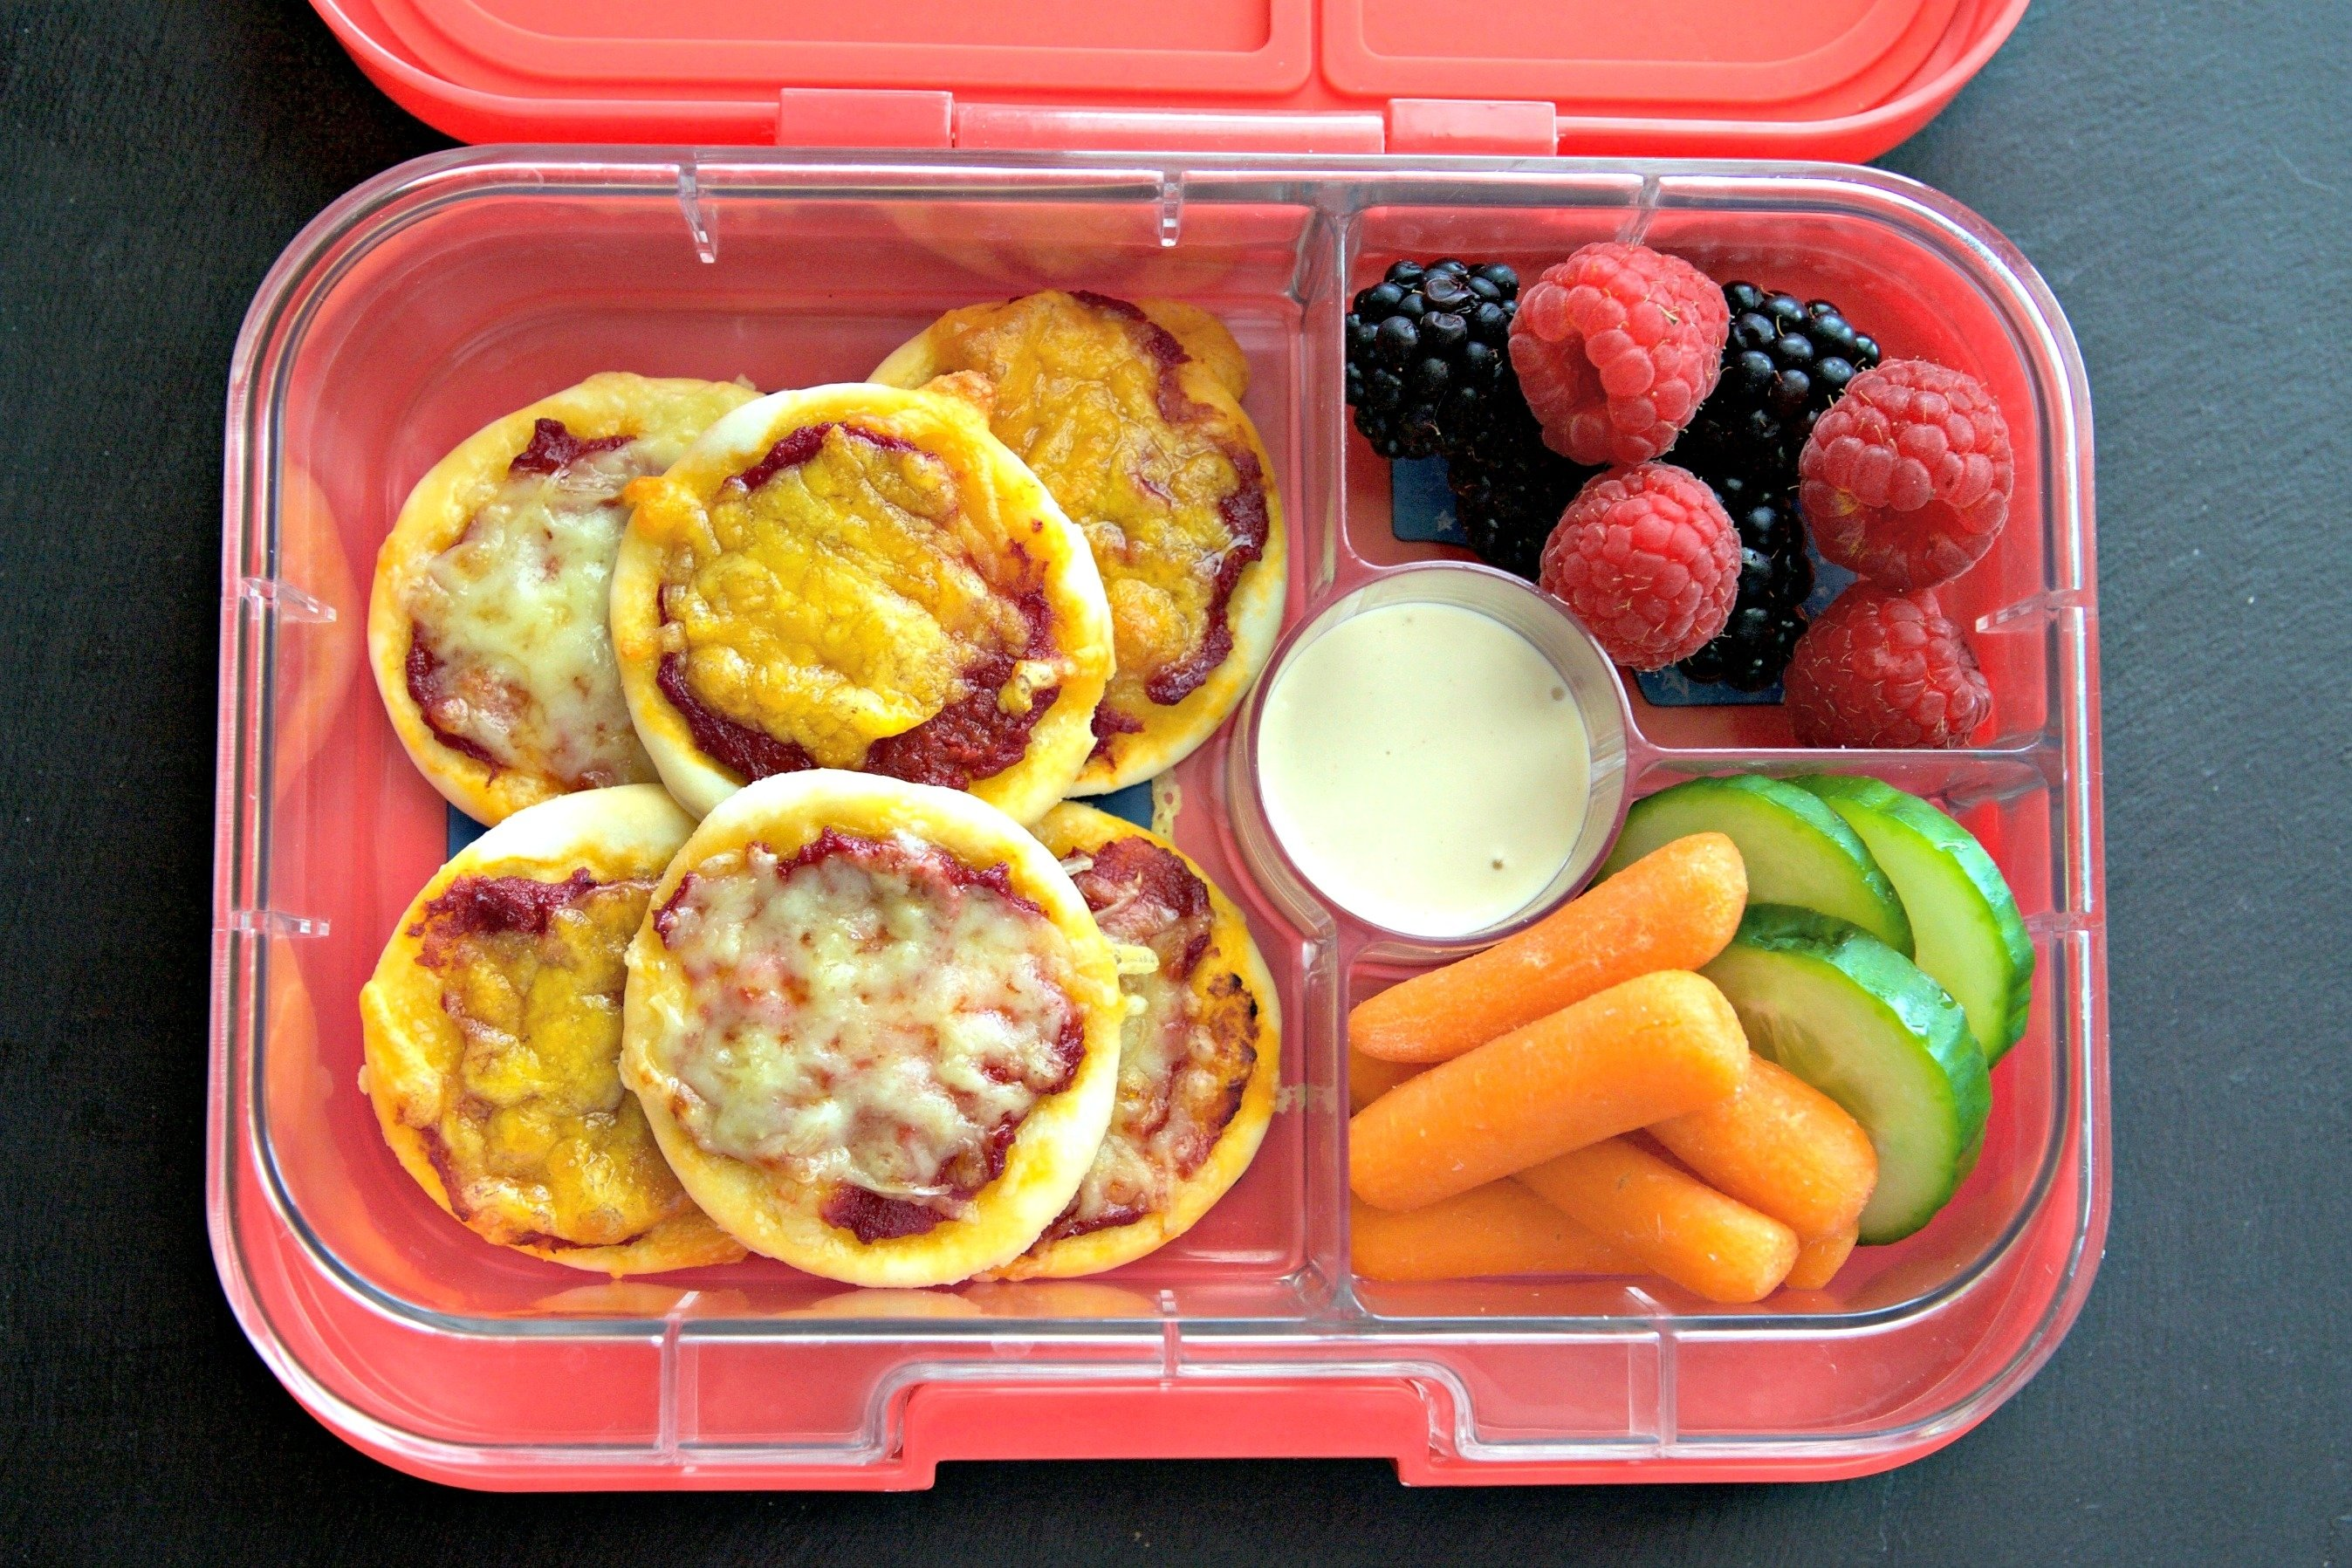 10 Trendy Meal Ideas For Picky Eaters mini pizza recipe the perfect picky eater meal yumbox 4